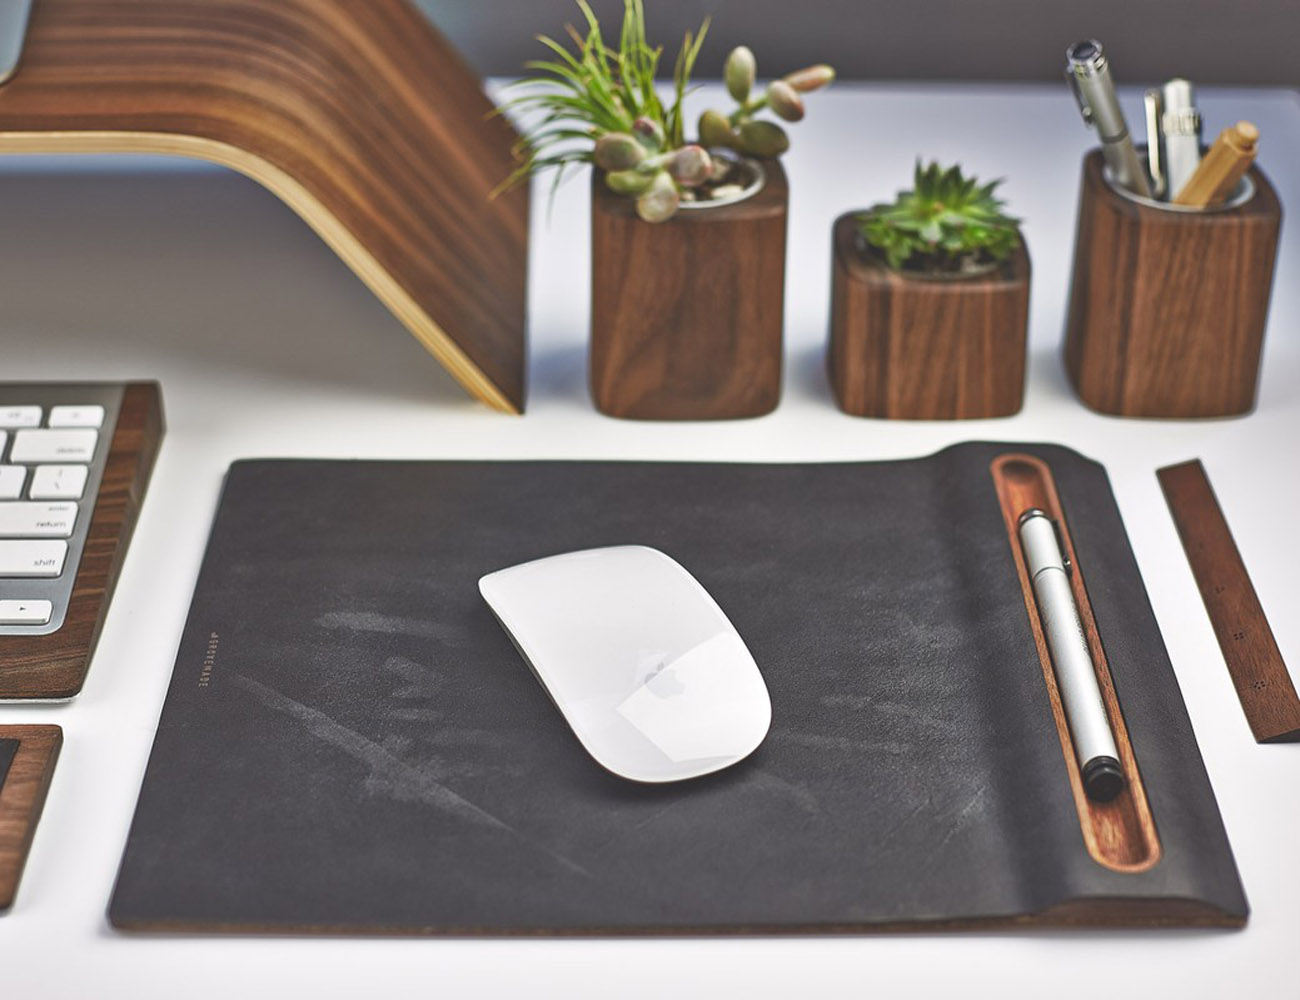 Walnut Mouse Pad by Grovemade